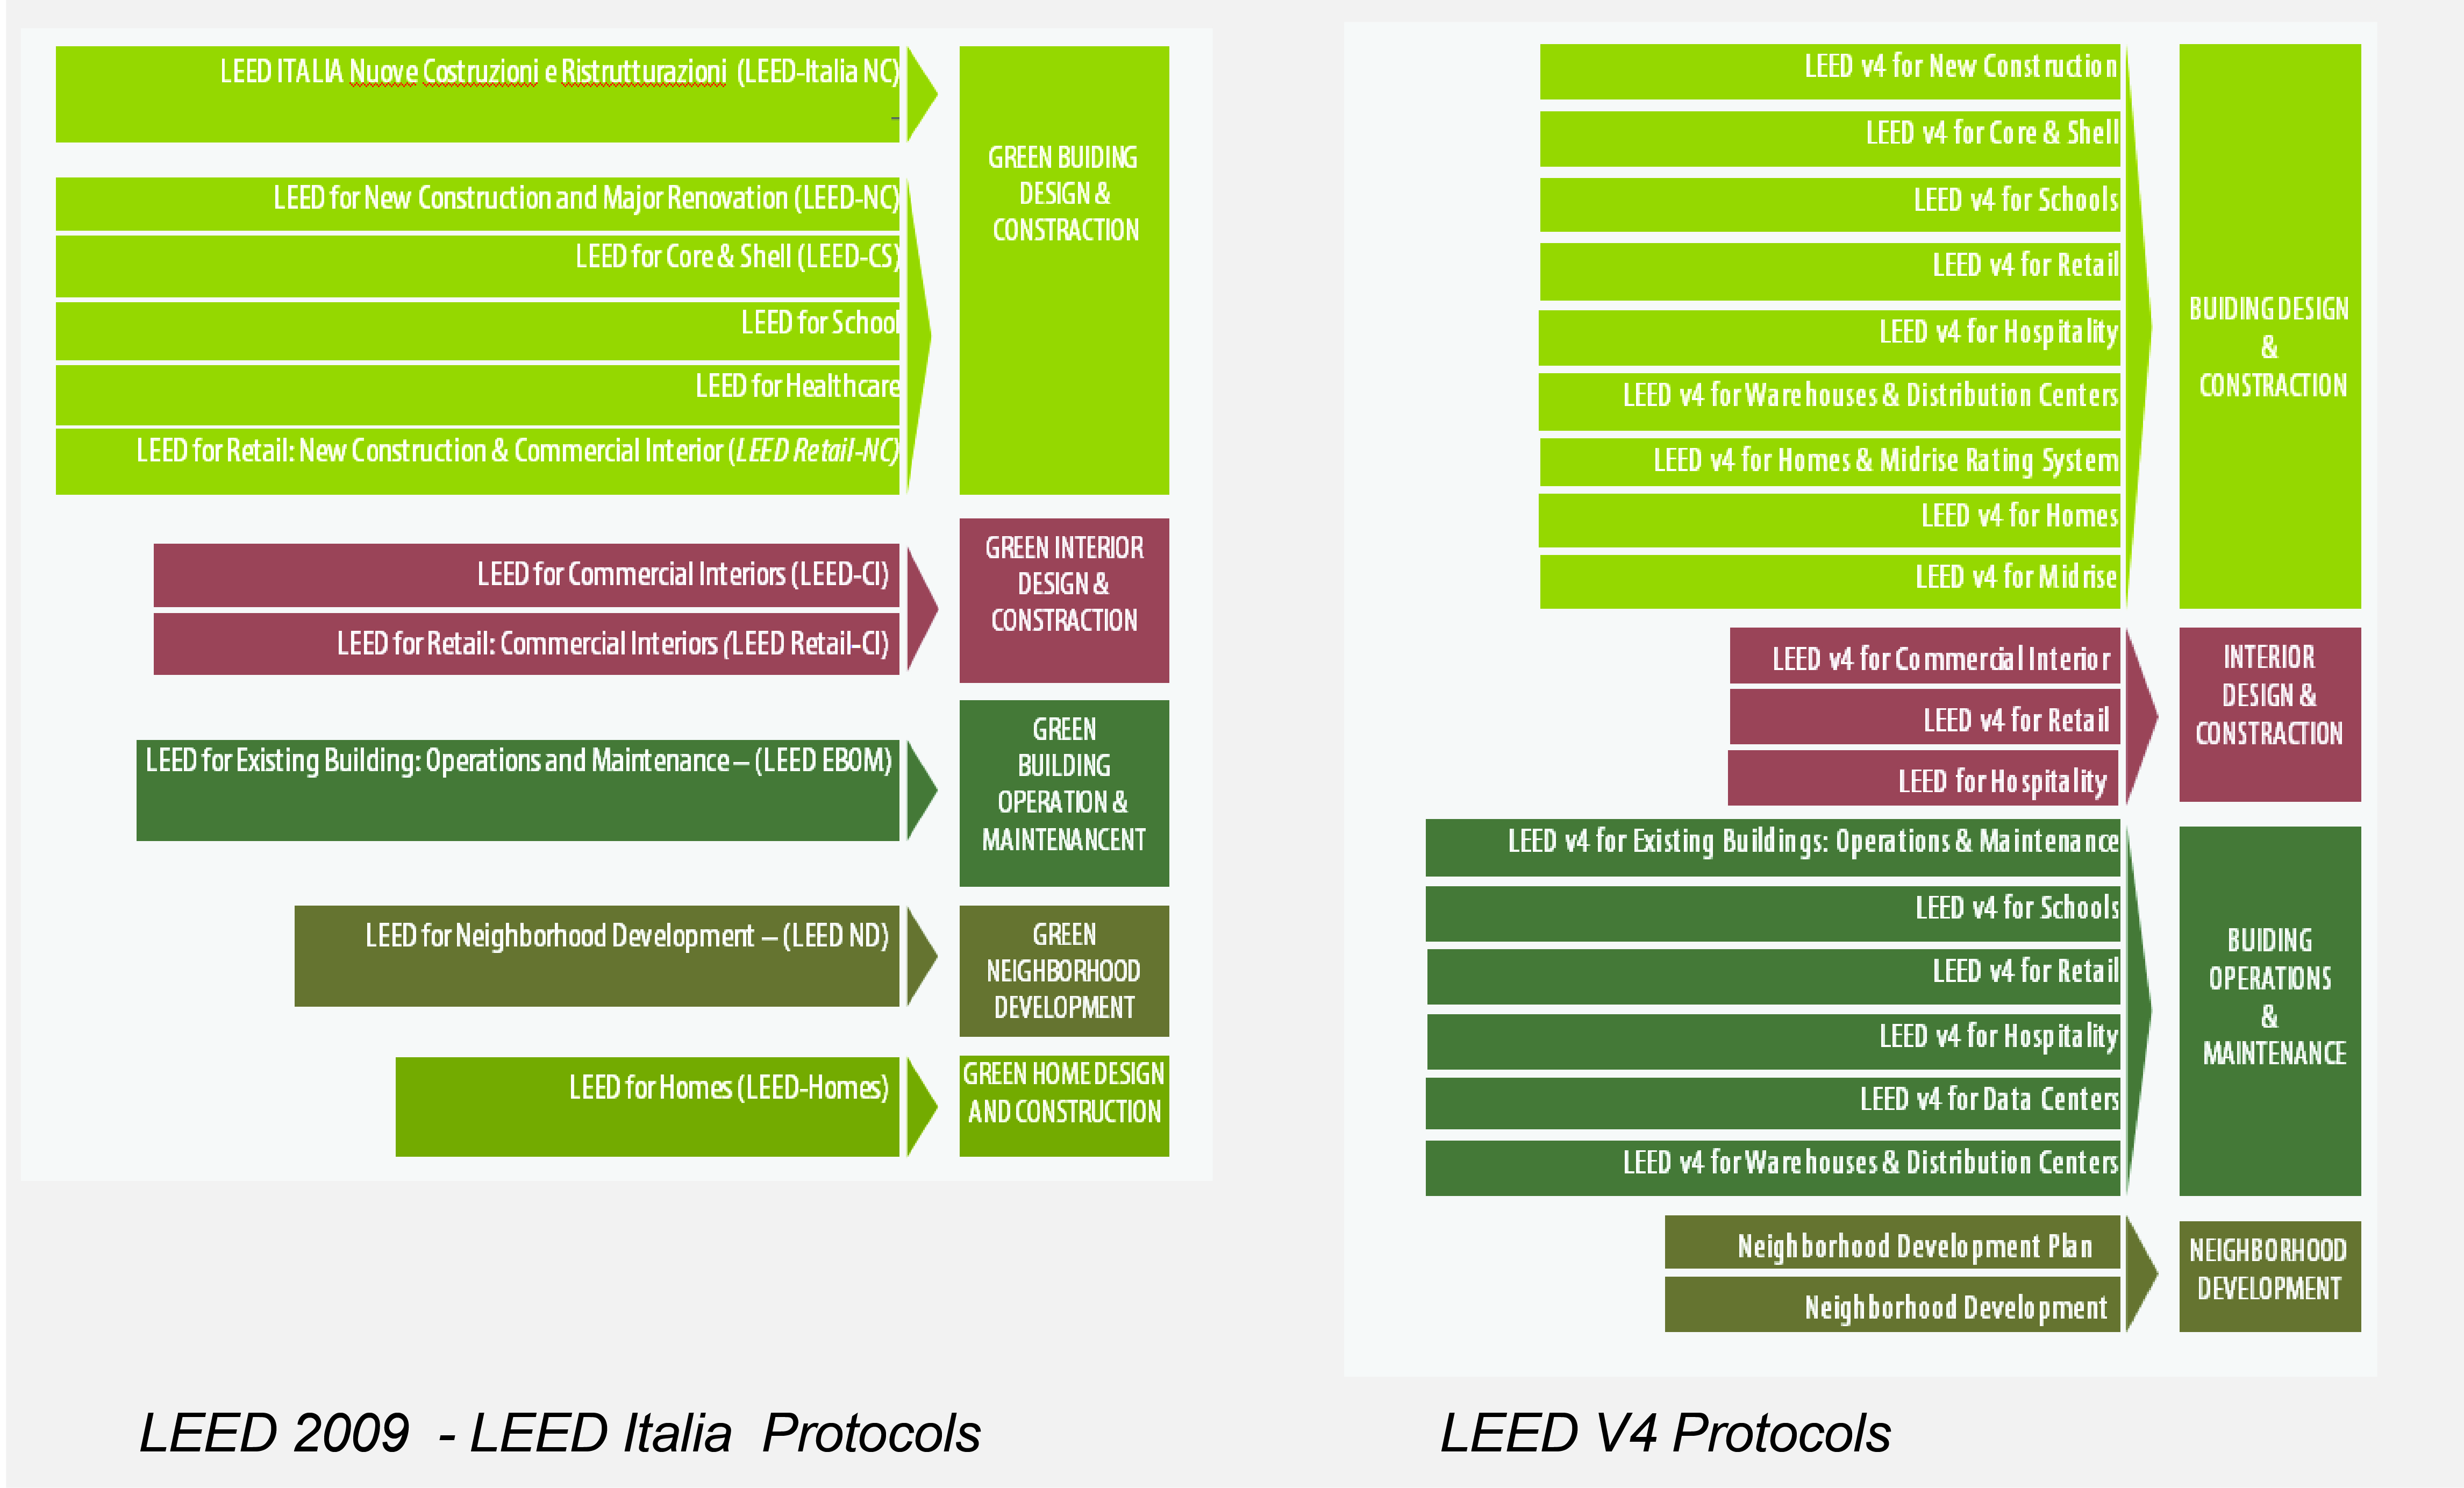 leed certification, protocols and categories